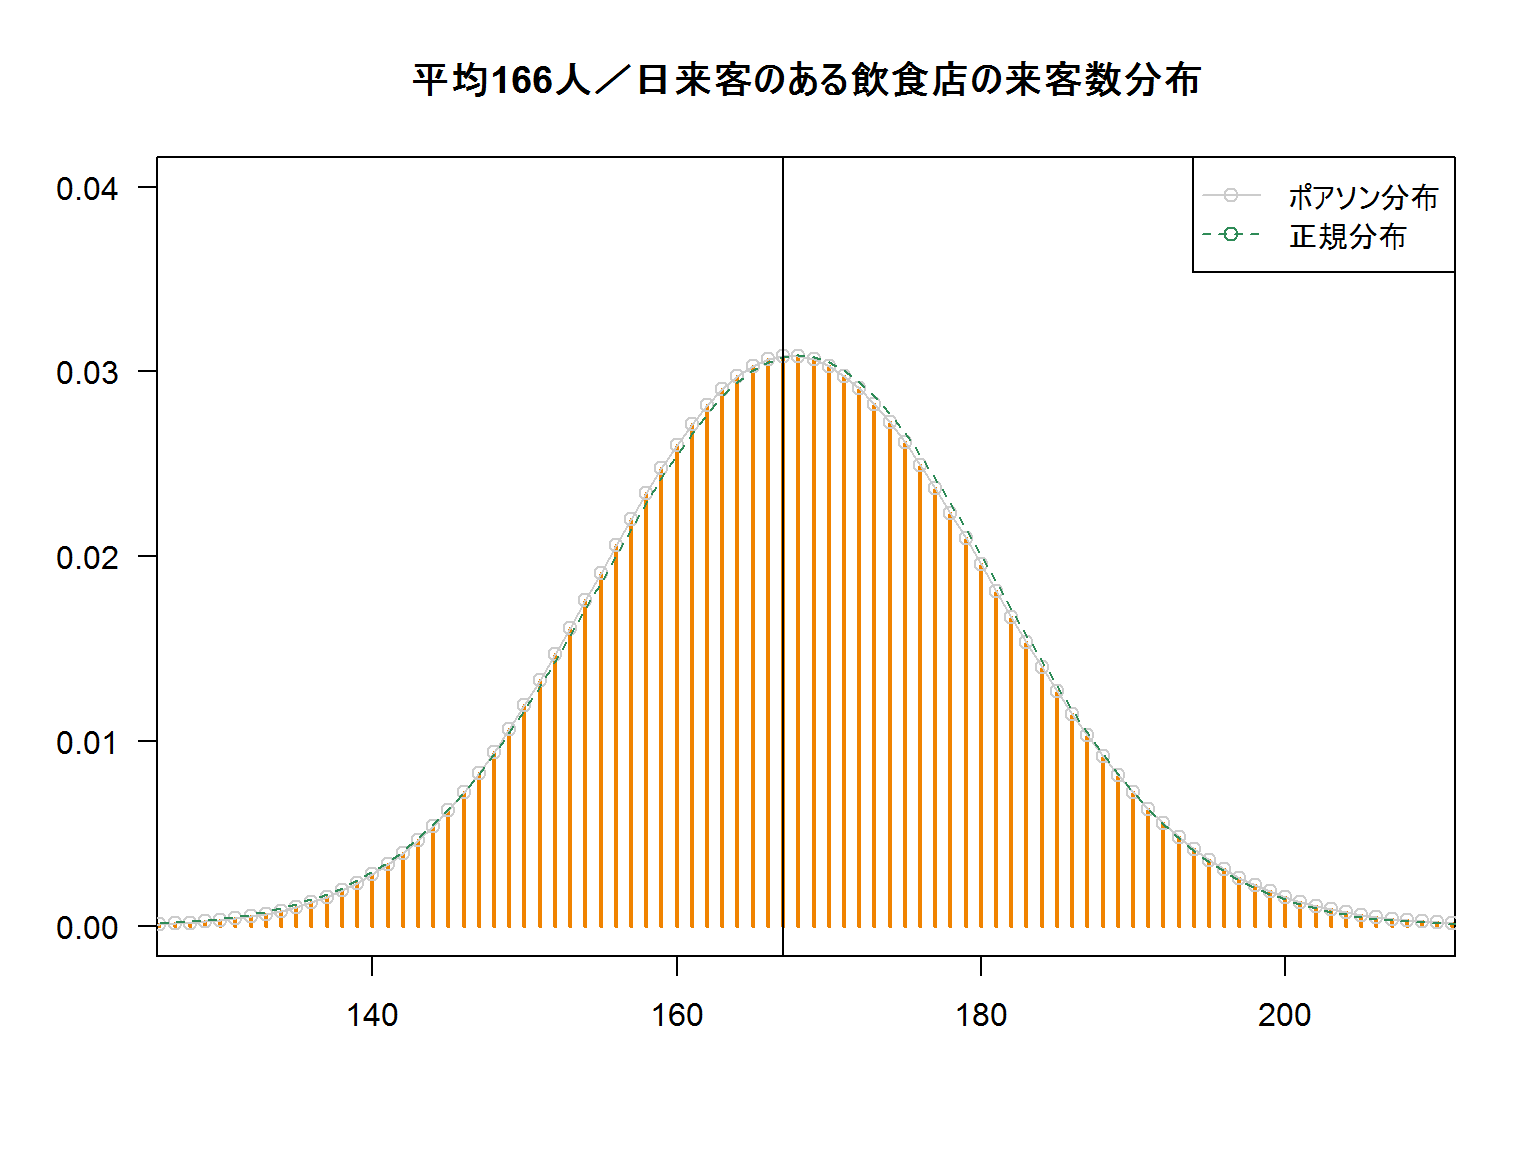 Poisson_distribution_5